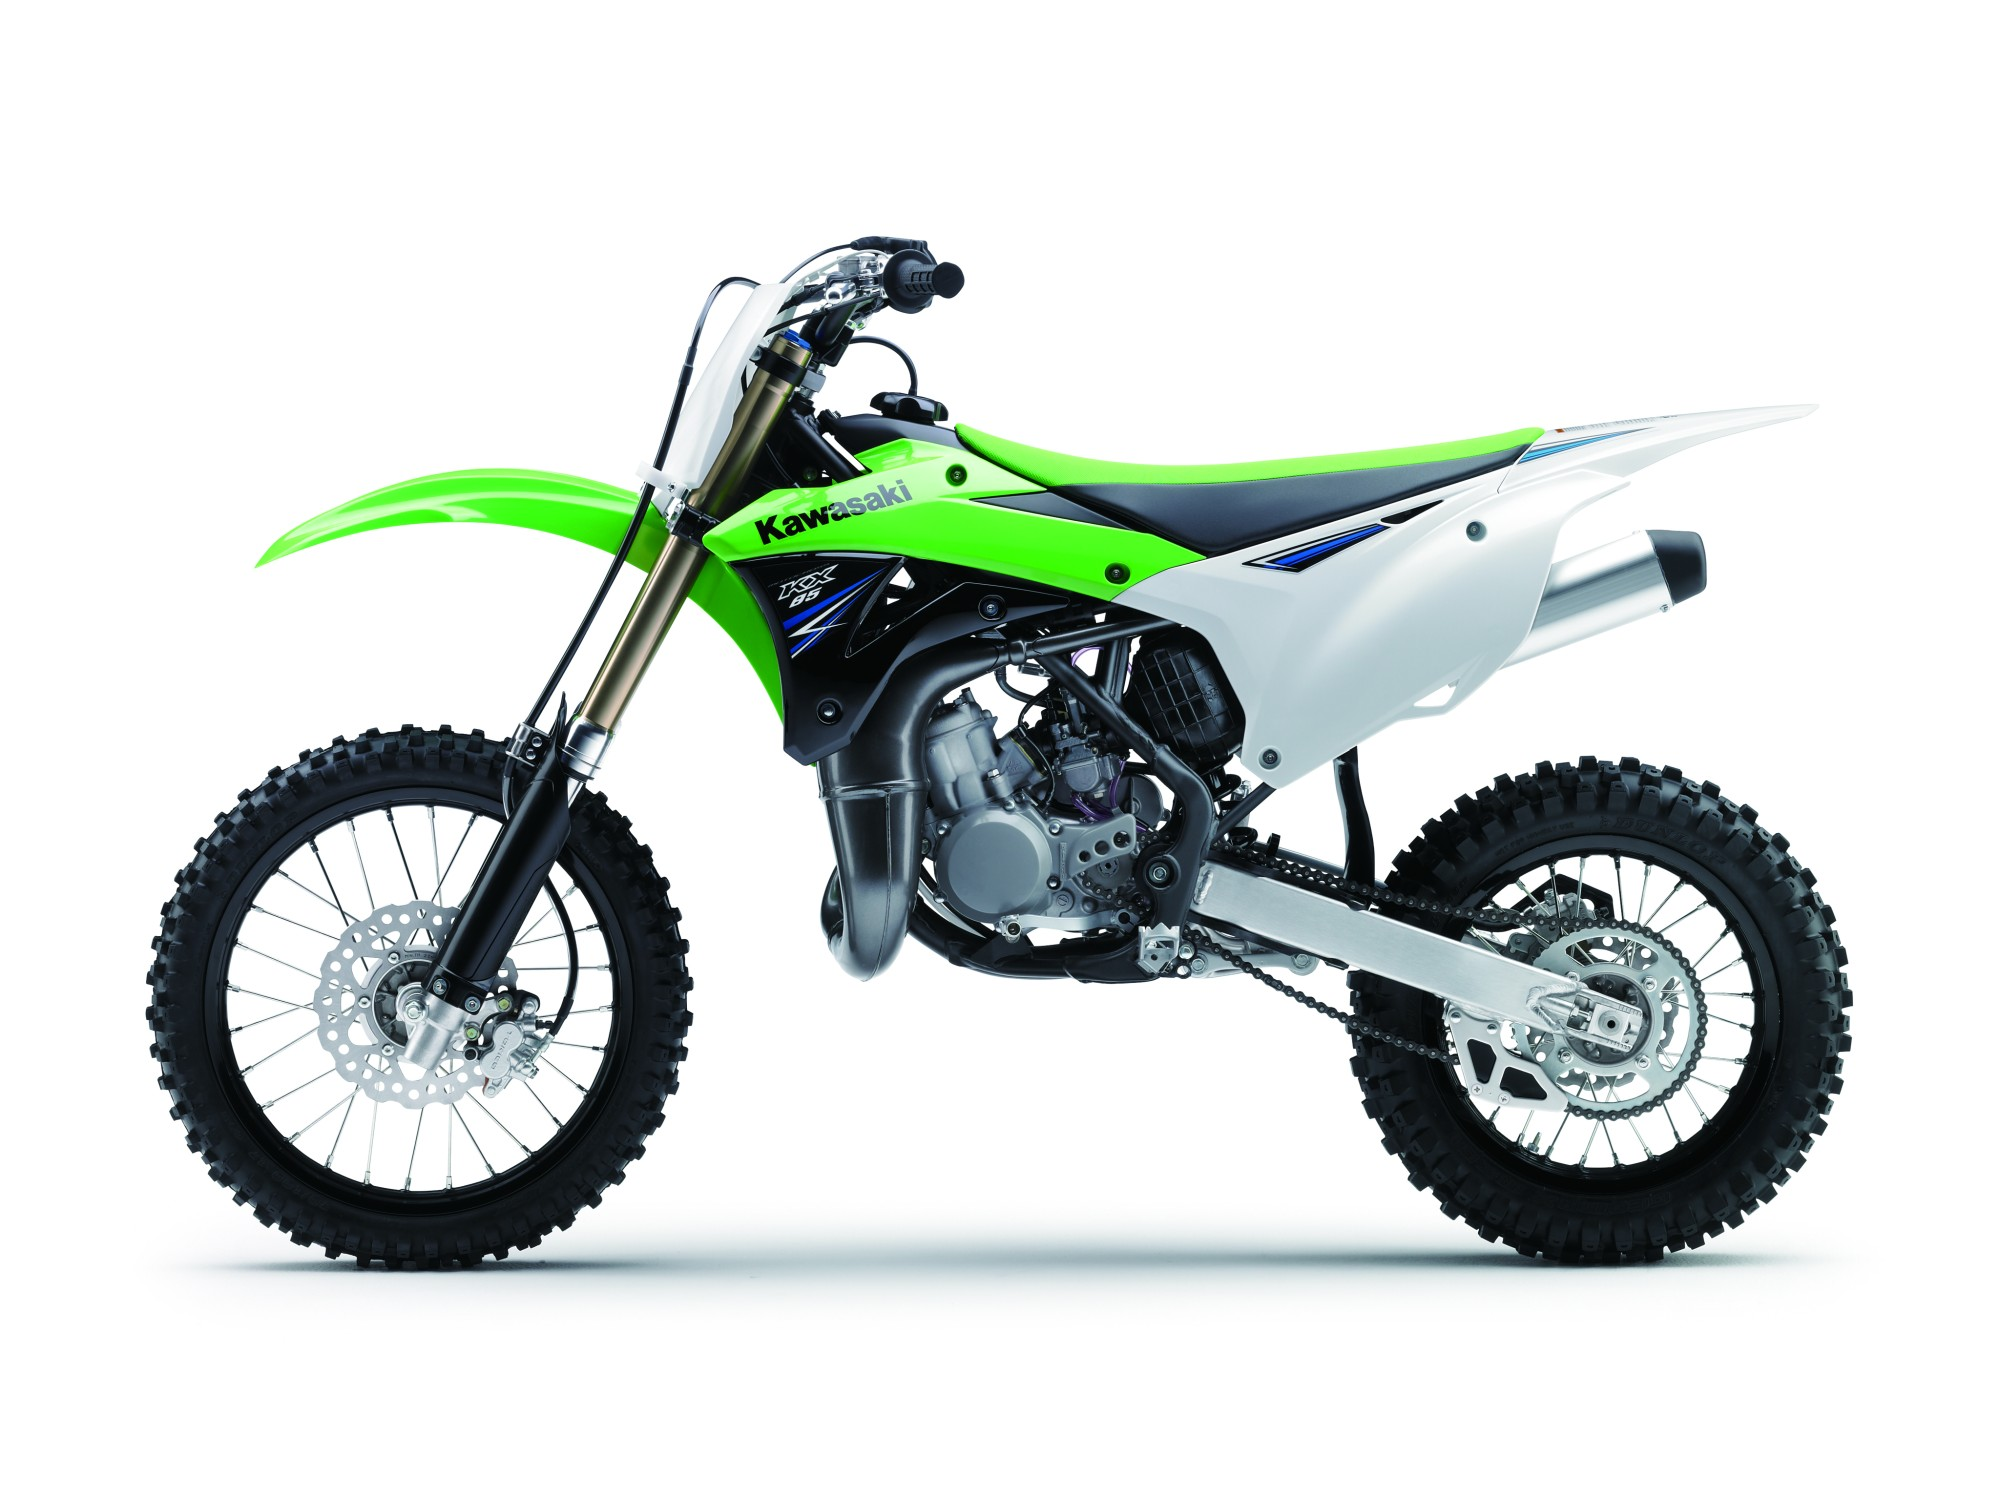 gebrauchte kawasaki kx 85 motorr der kaufen. Black Bedroom Furniture Sets. Home Design Ideas